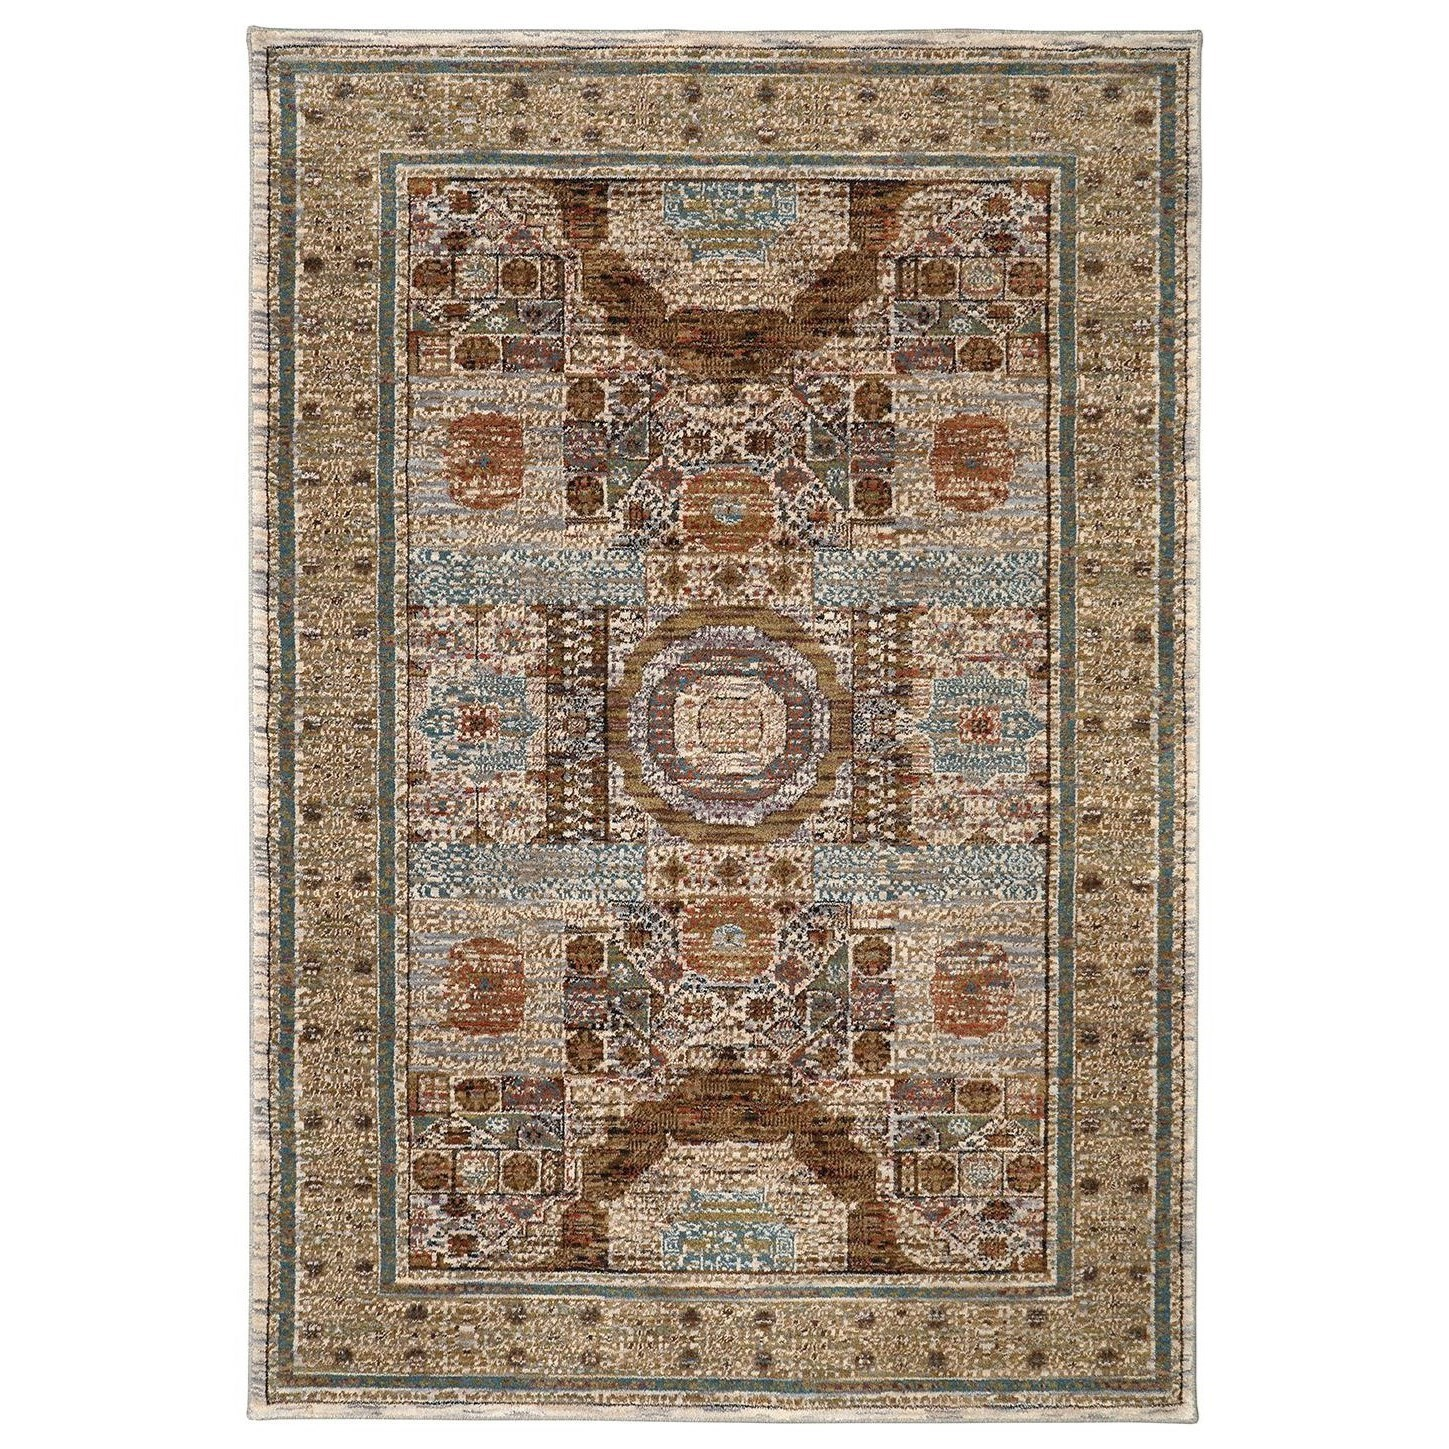 Spice Market 3'5x5'5 Cyprus Cream Rug by Karastan Rugs at Darvin Furniture